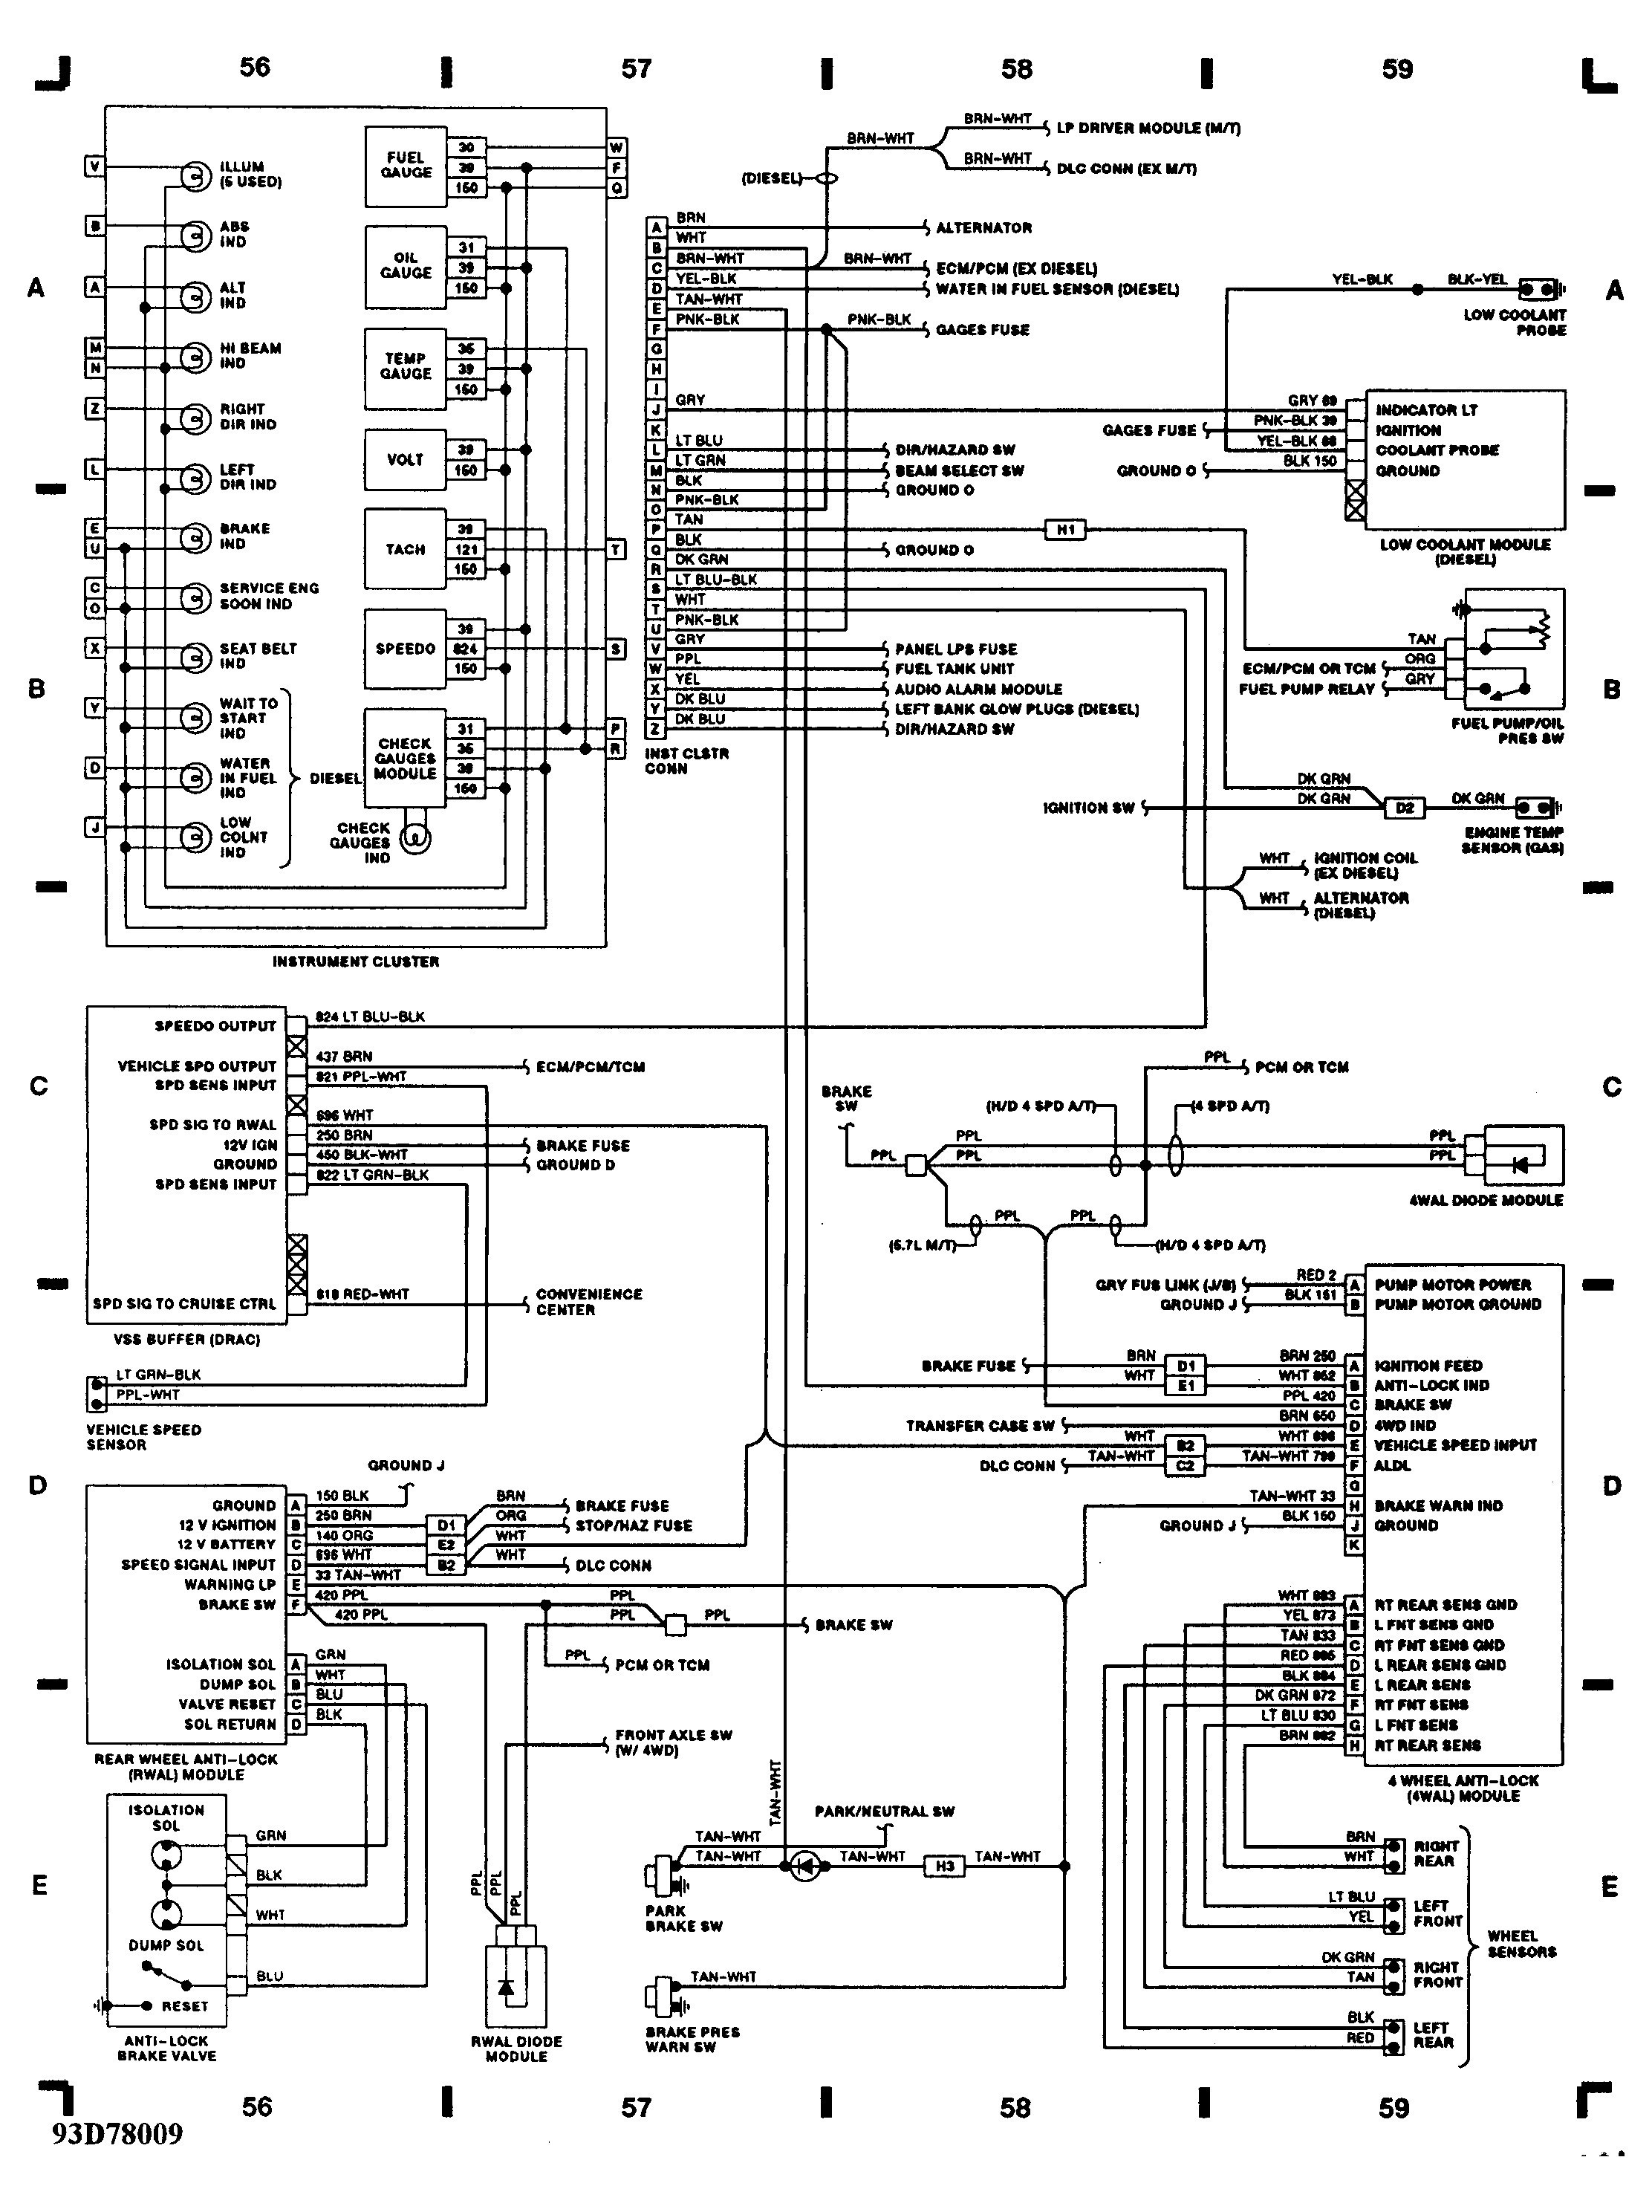 05 chevy wiring diagram hm 1538  chevrolet equinox wiring diagram wiring diagram 05 chevy silverado wiring diagram chevrolet equinox wiring diagram wiring